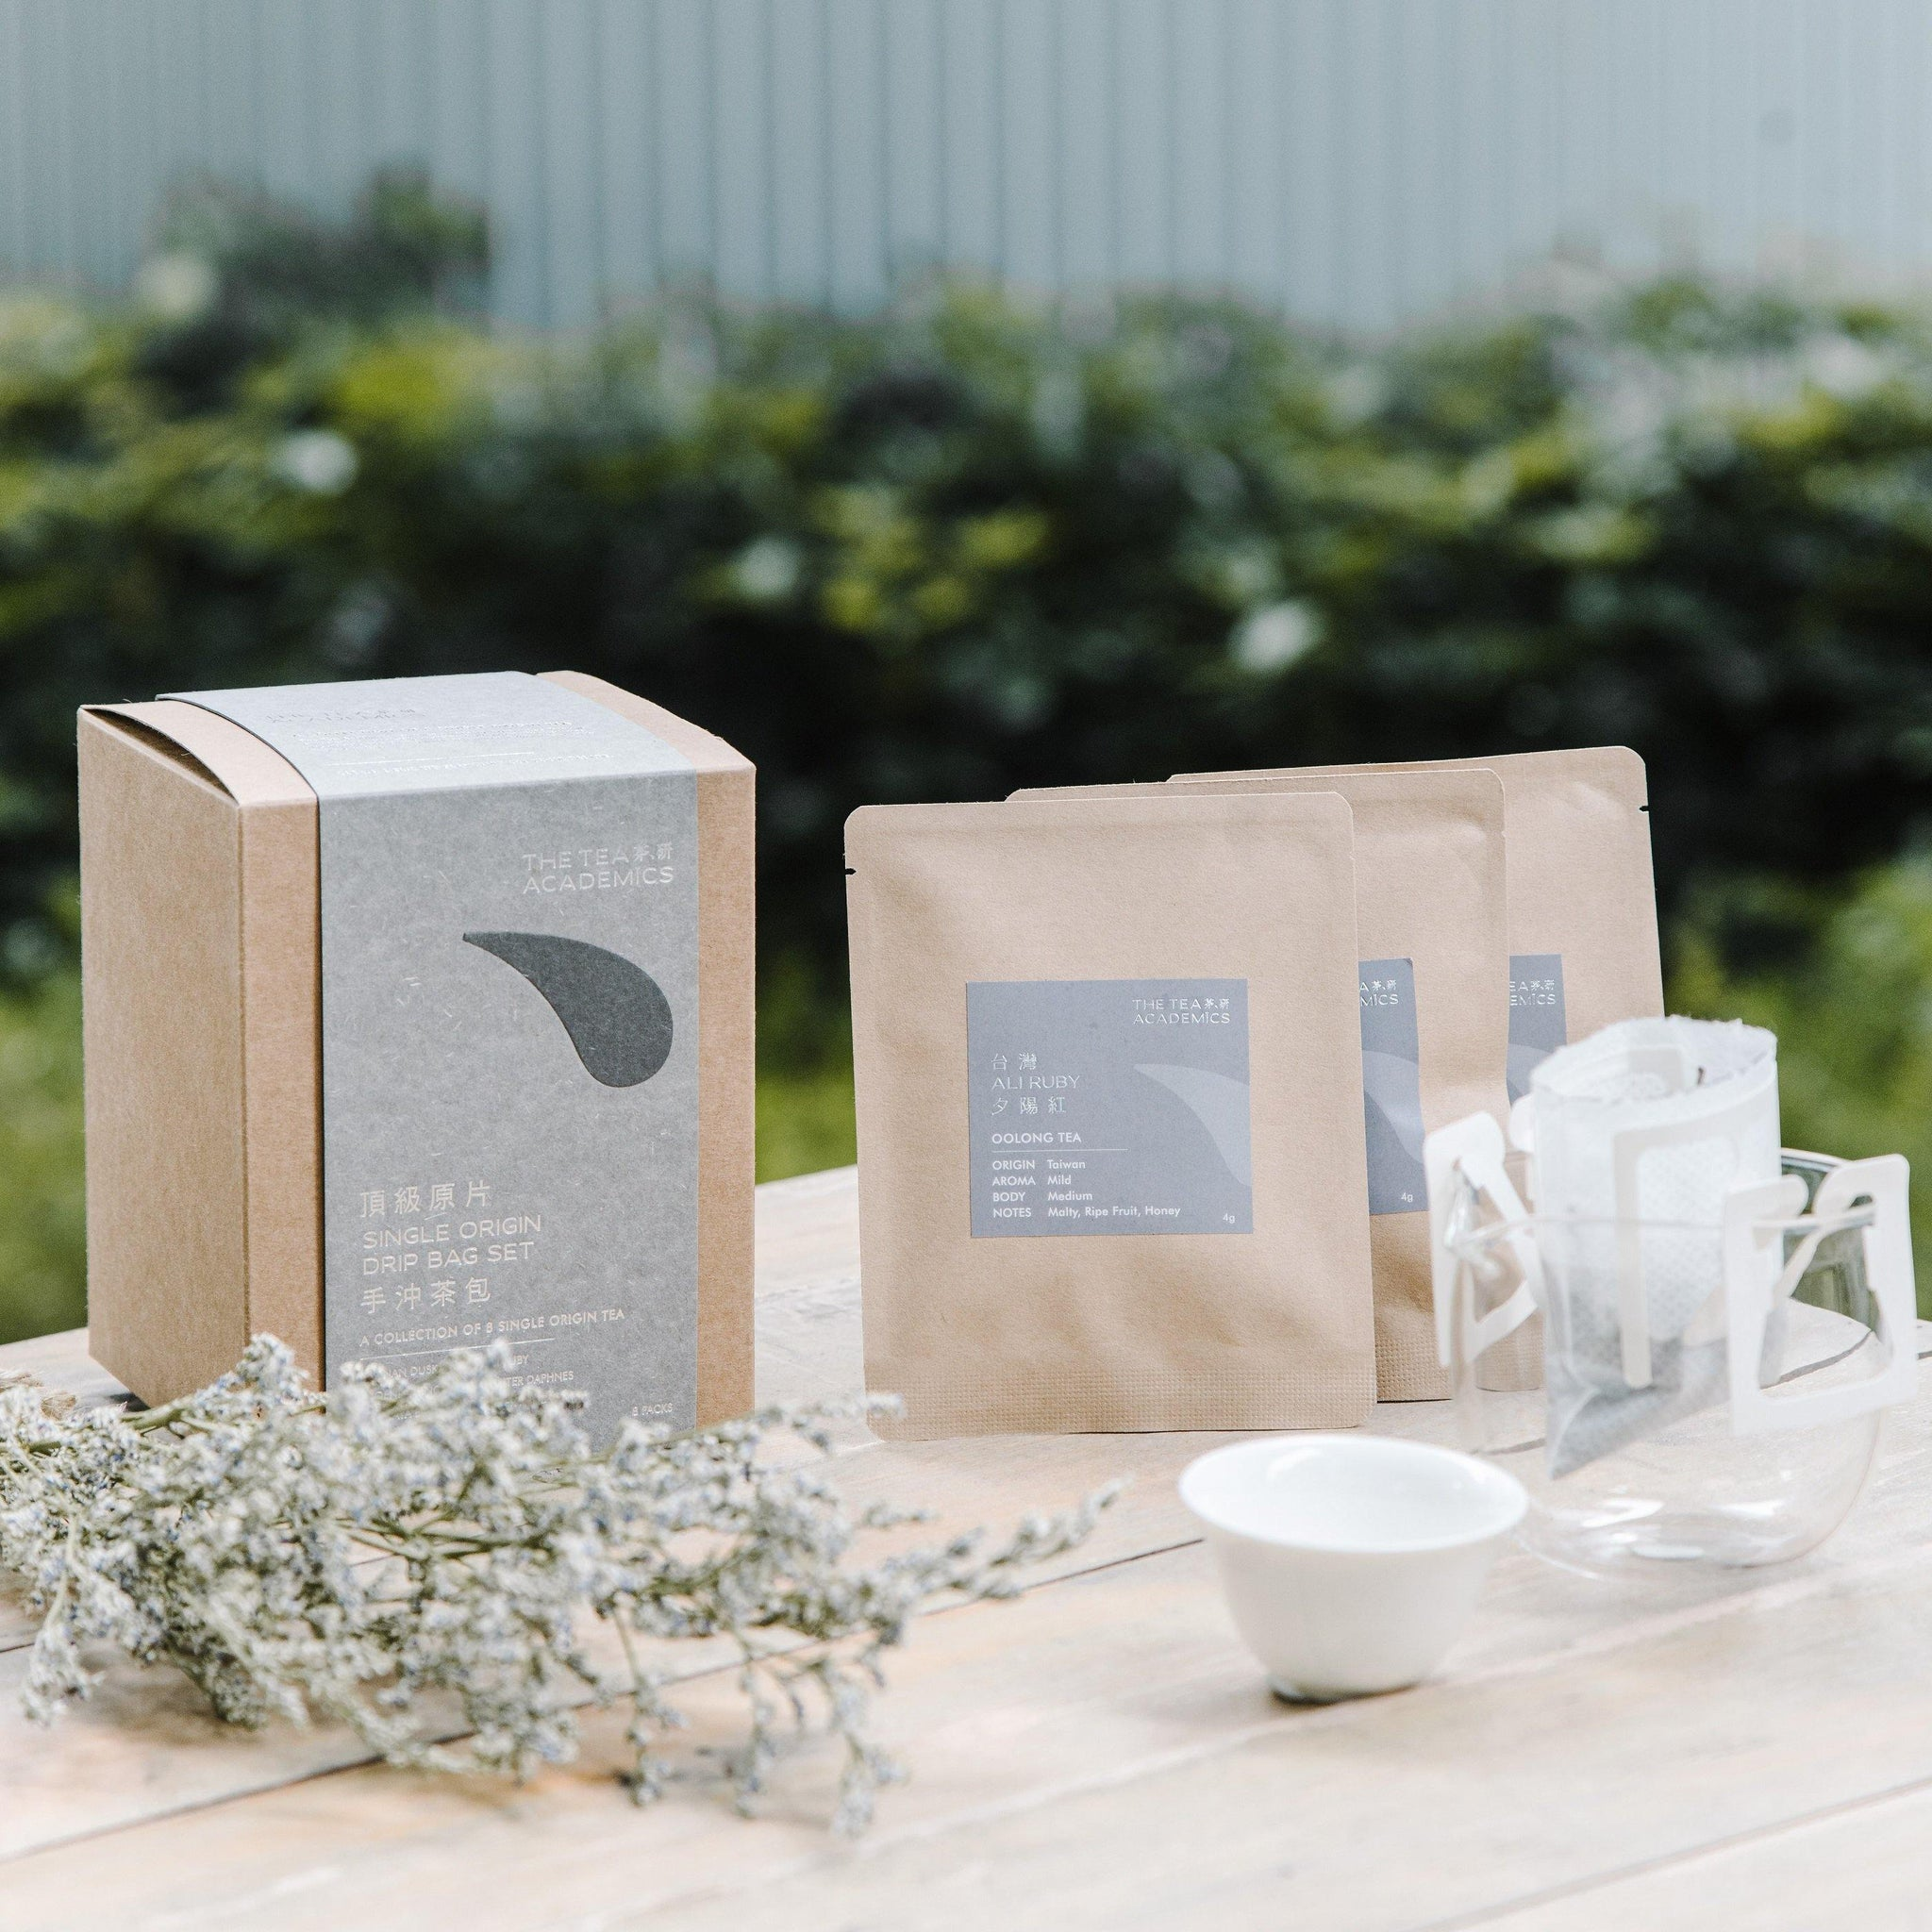 Single Origin Tea Drip Bag Set (8 Packs) - The Coffee Academics